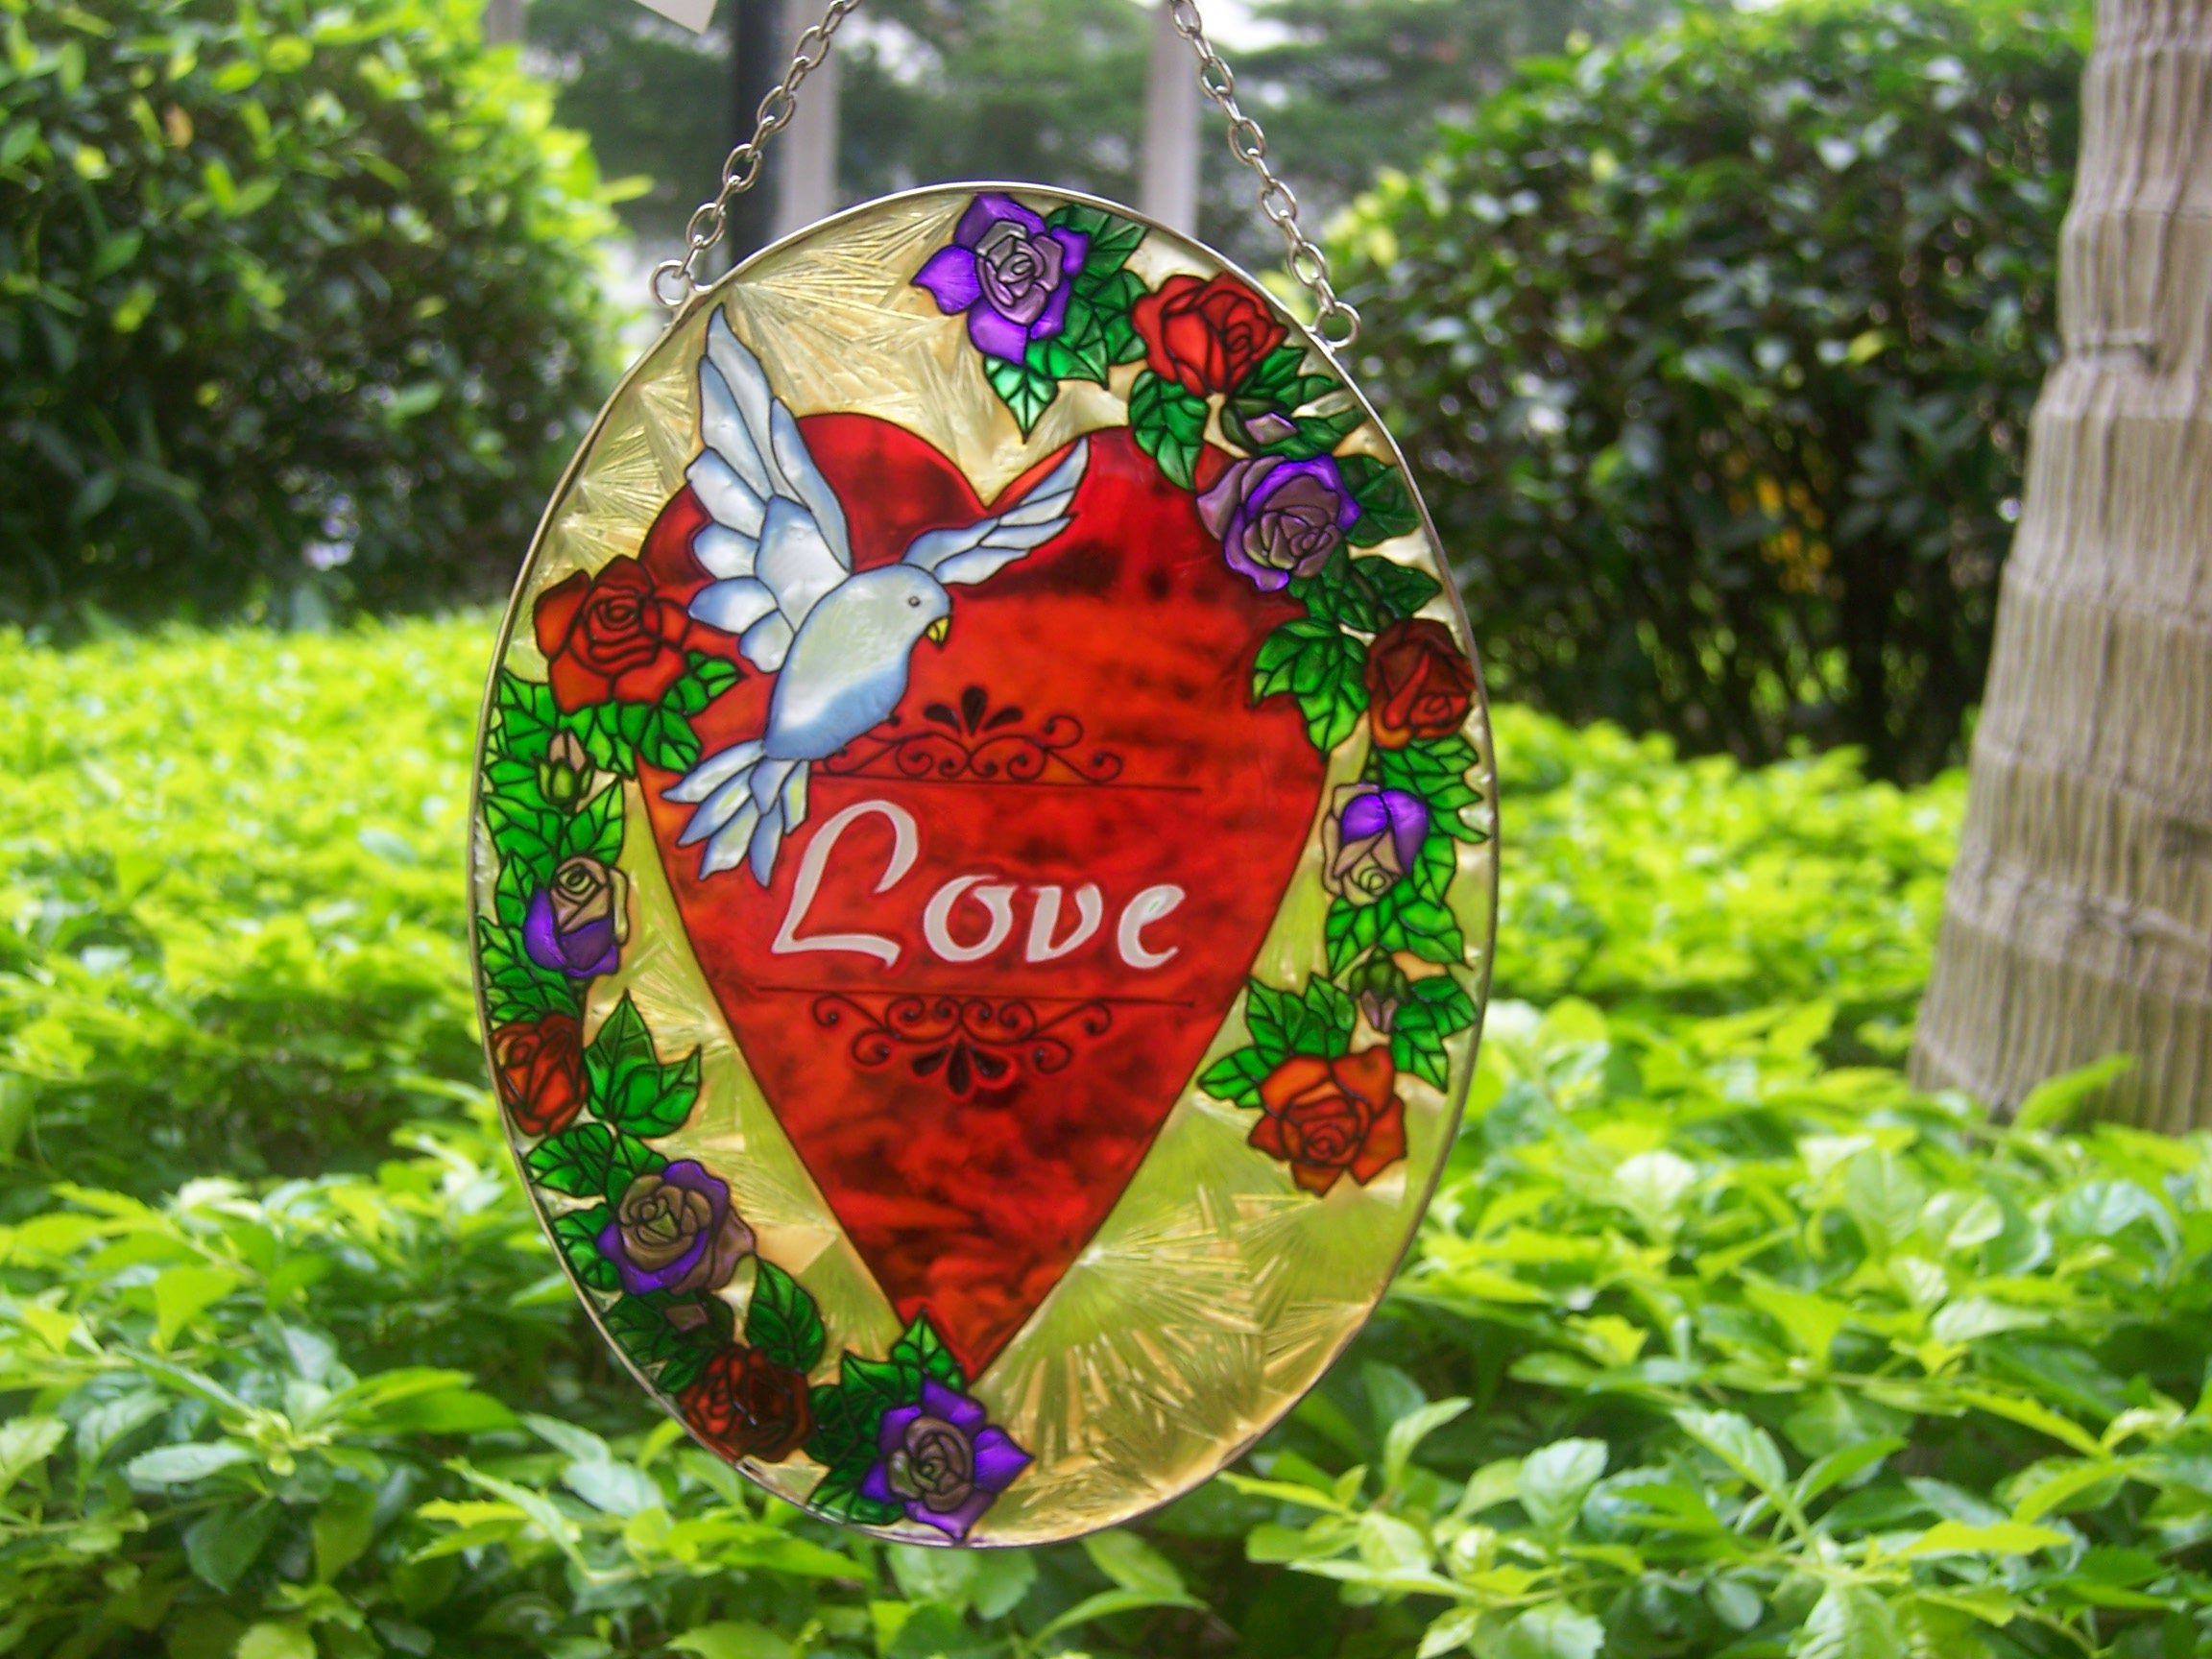 Hand Painting Stained Glass Suncatchers With Red Heart Patterns Design Wallpaper